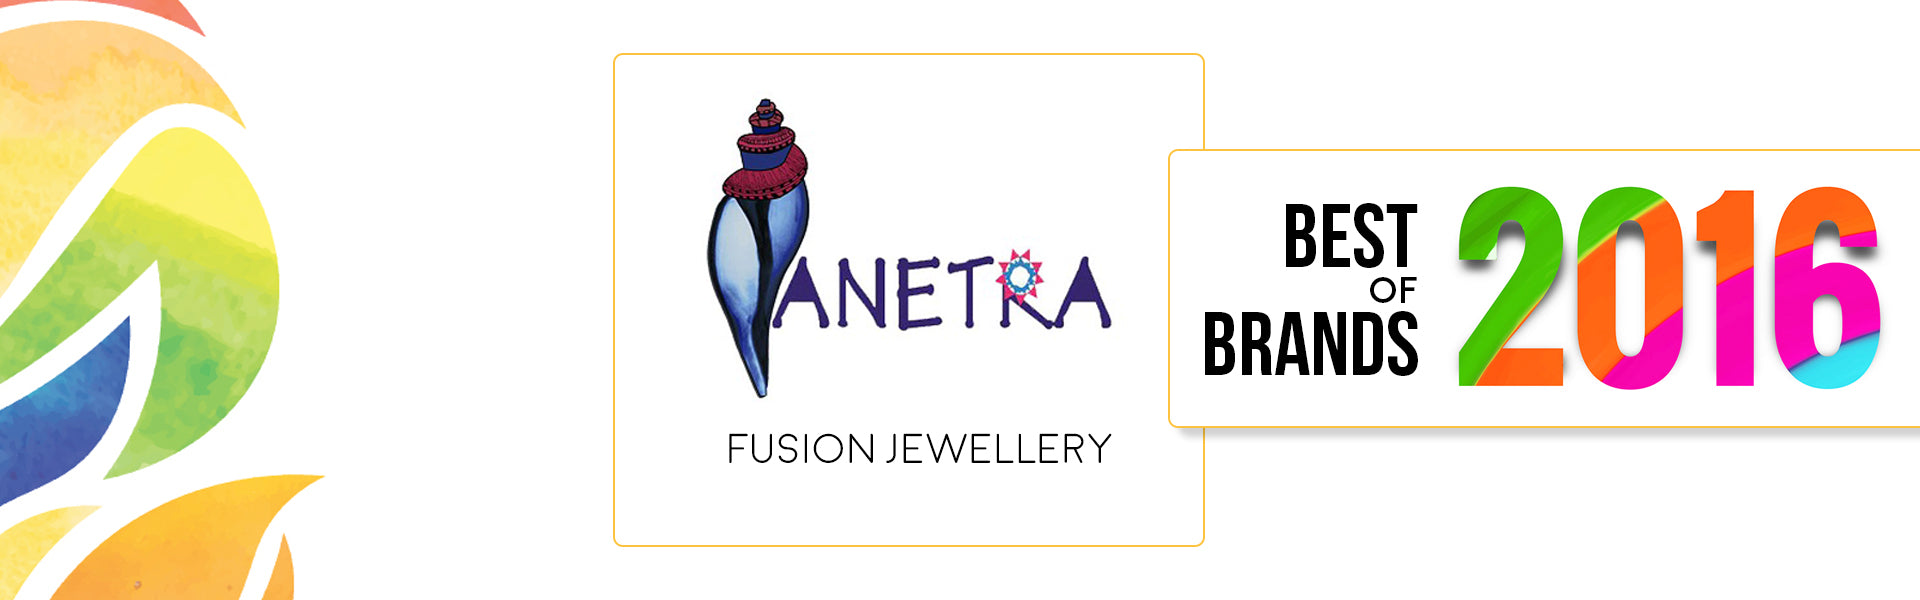 Best Brands of the Year | Anetra